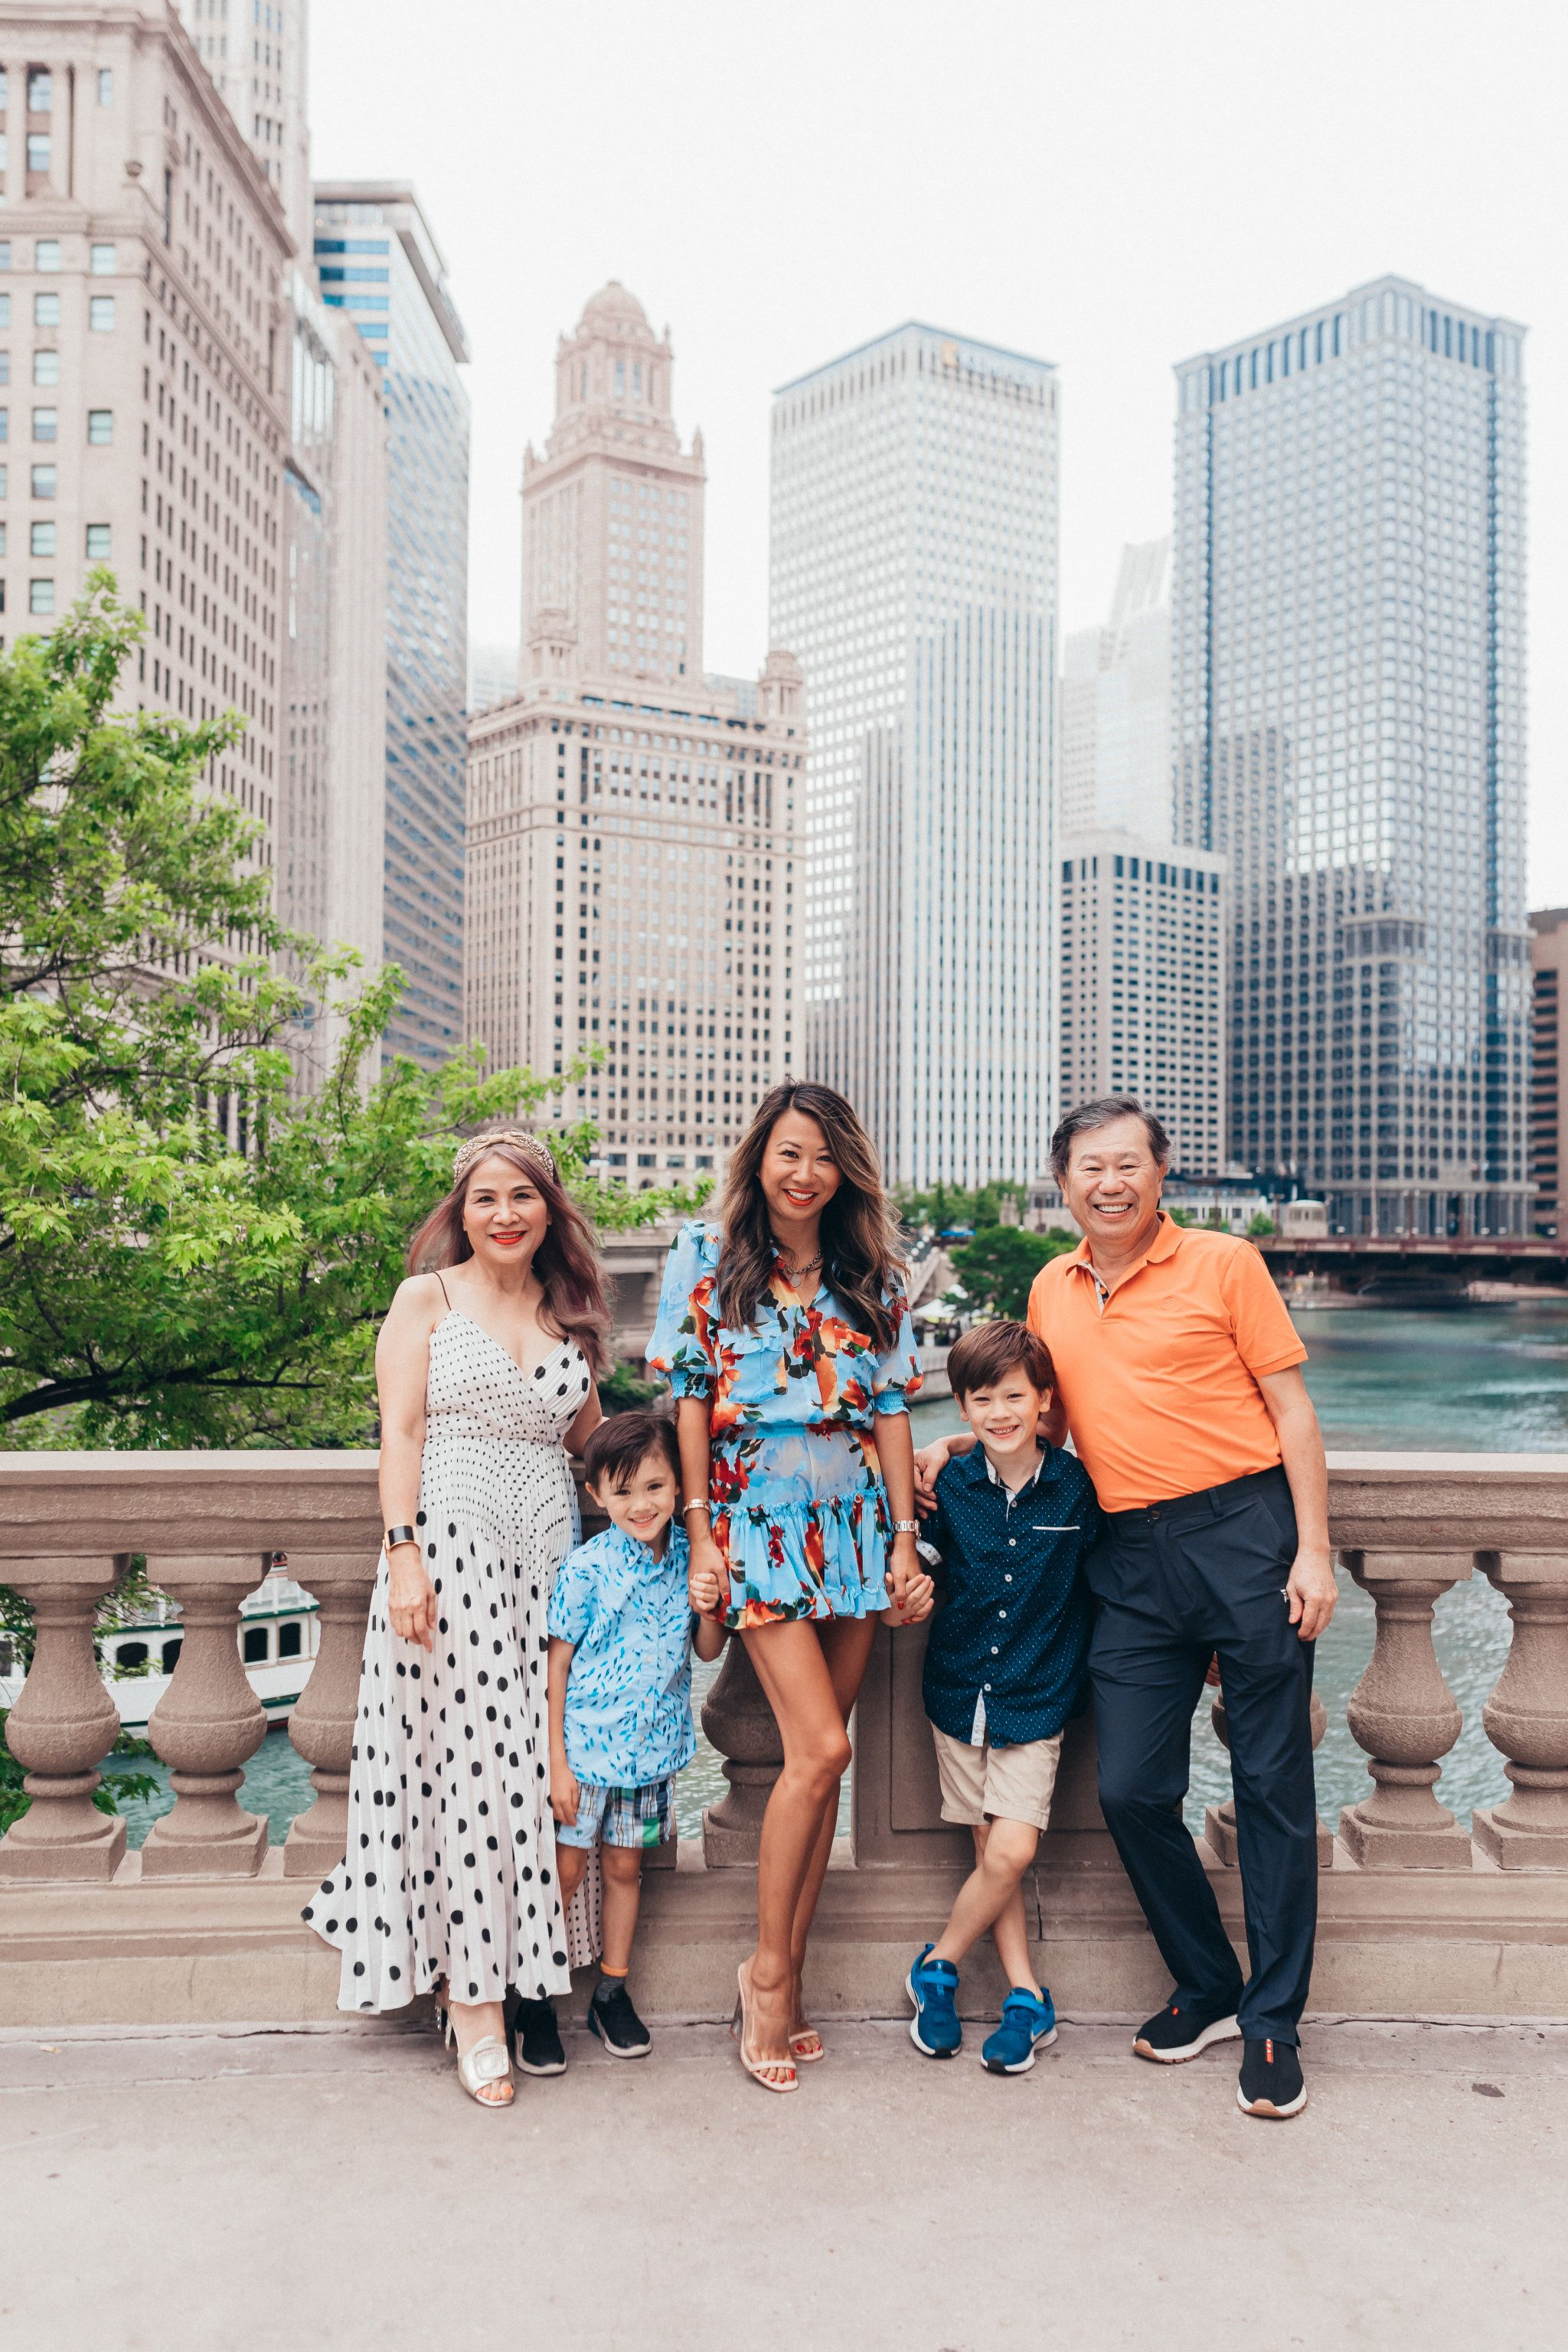 Hannah Schweiss, Best Chicago Spots to Take Photos, Rent the Runway Unlimited Dresses, Jennifer Worman, Chicago Mom Blogger, Wrigley Building Photos, Chicago Landscape